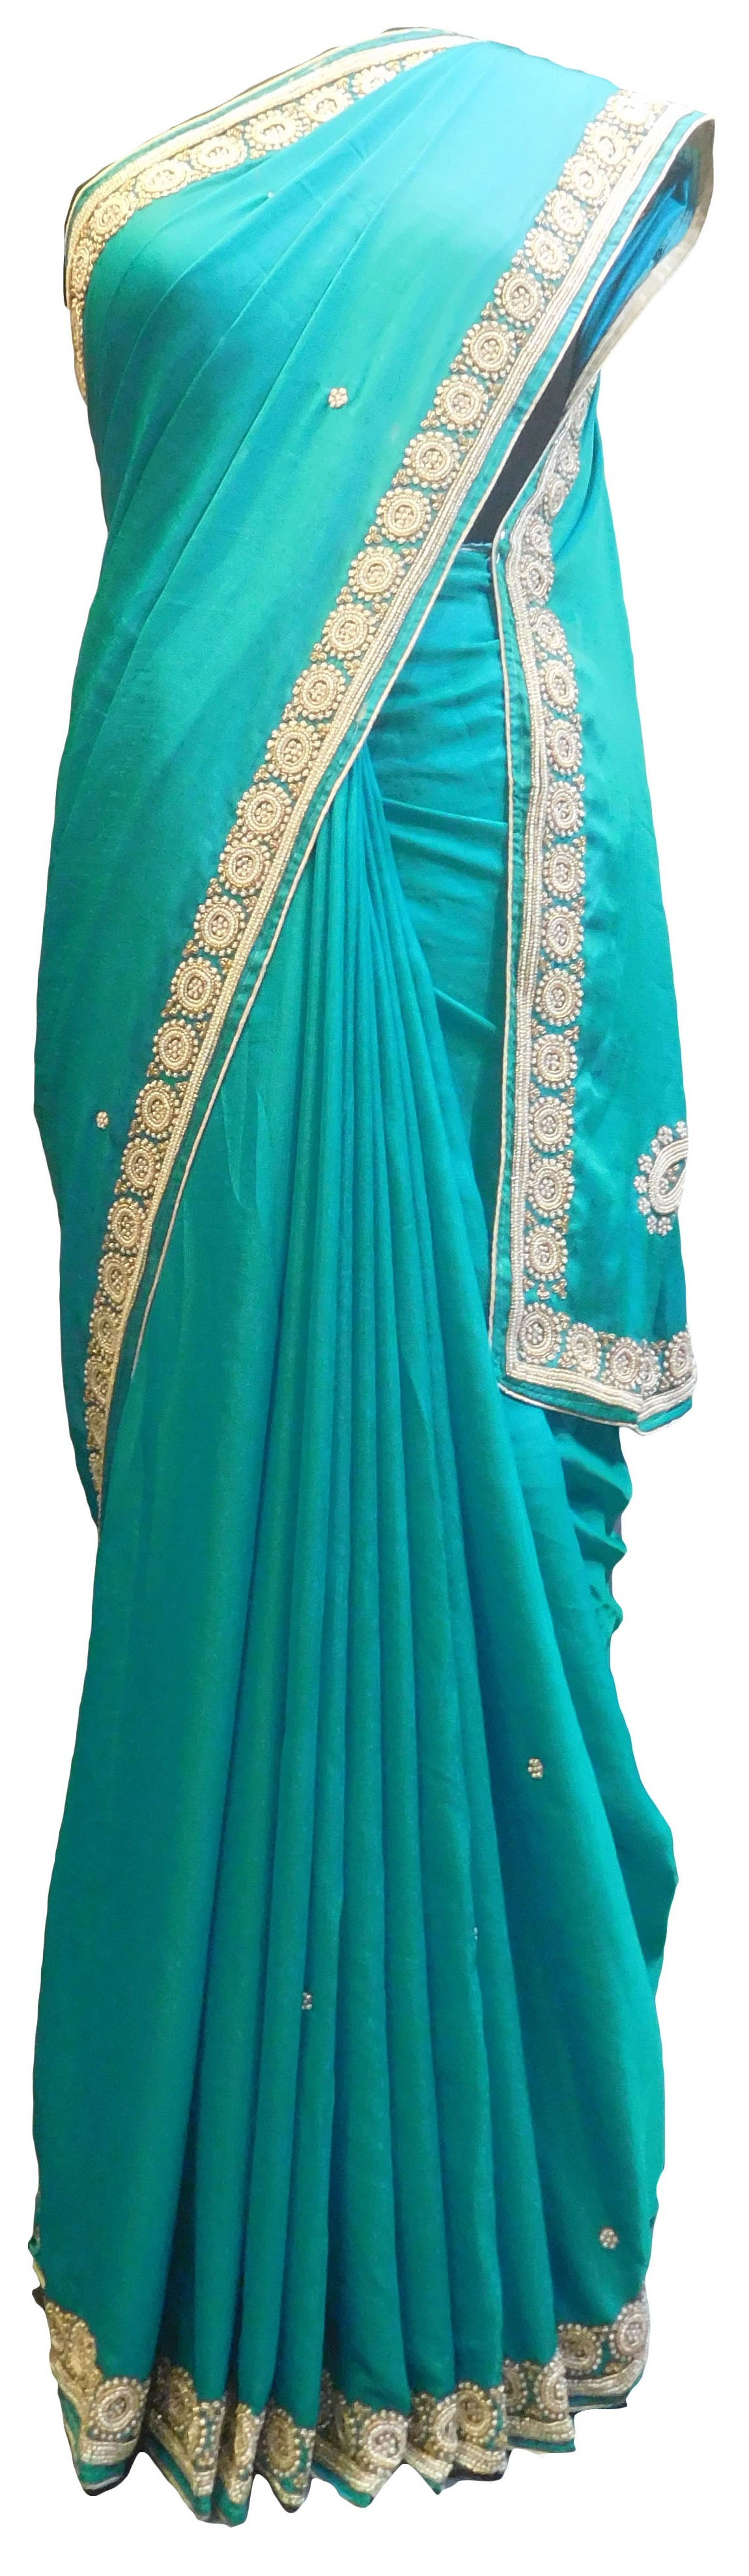 SMSAREE Turquoise Designer Wedding Partywear Satin Silk Beads Bullion & Pearl Hand Embroidery Work Bridal Saree Sari With Blouse Piece E806